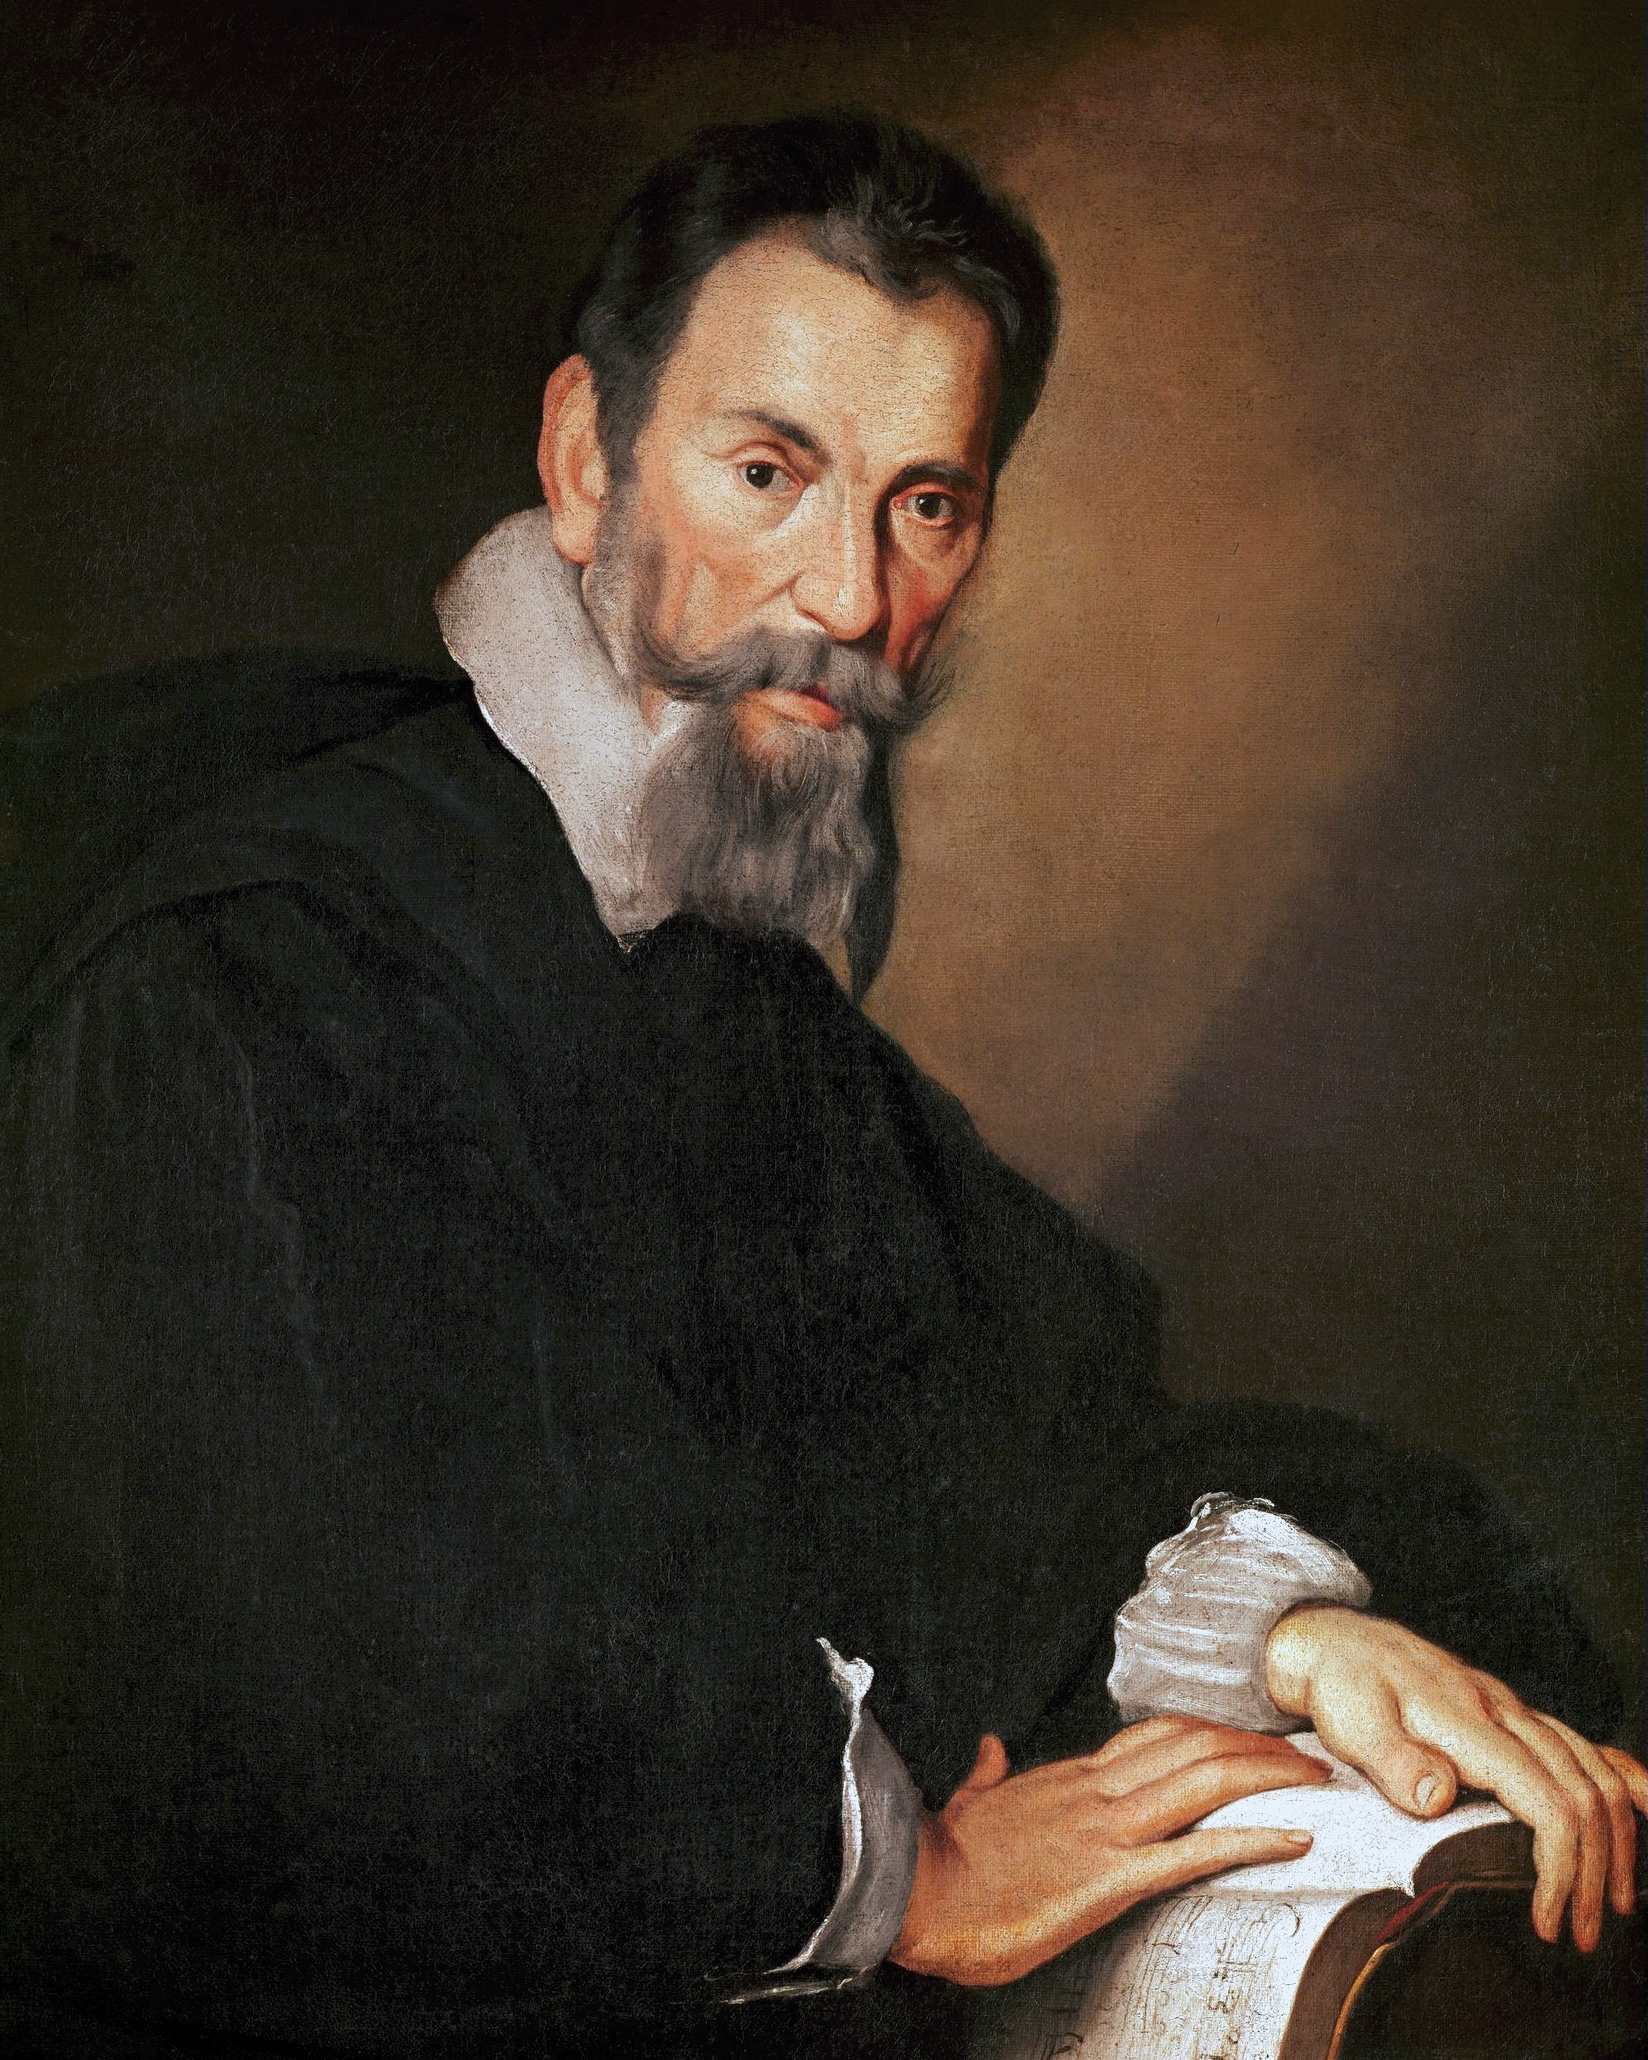 Image of Claudio Monteverdi